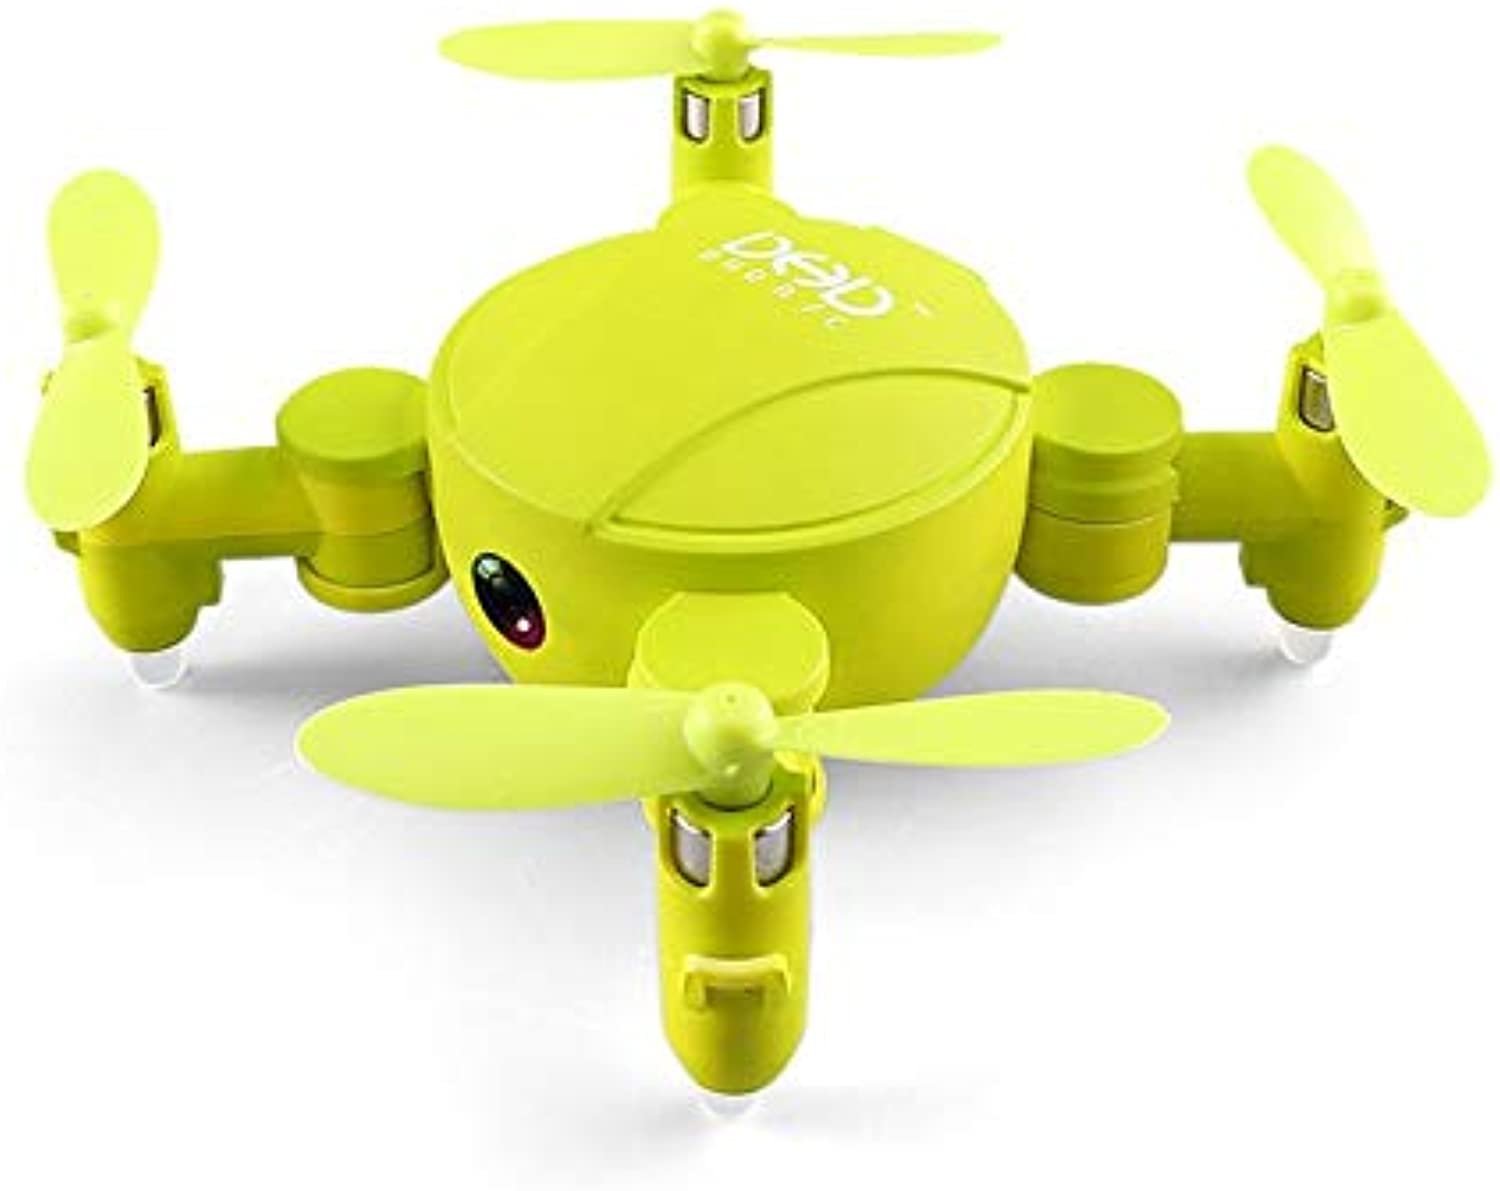 Generic DHD D4 Mini Drone WiFi FPV with 720P Camera High Hold Mode RC Drone Quadcopter RTF Cute Quadcopter Toys Green